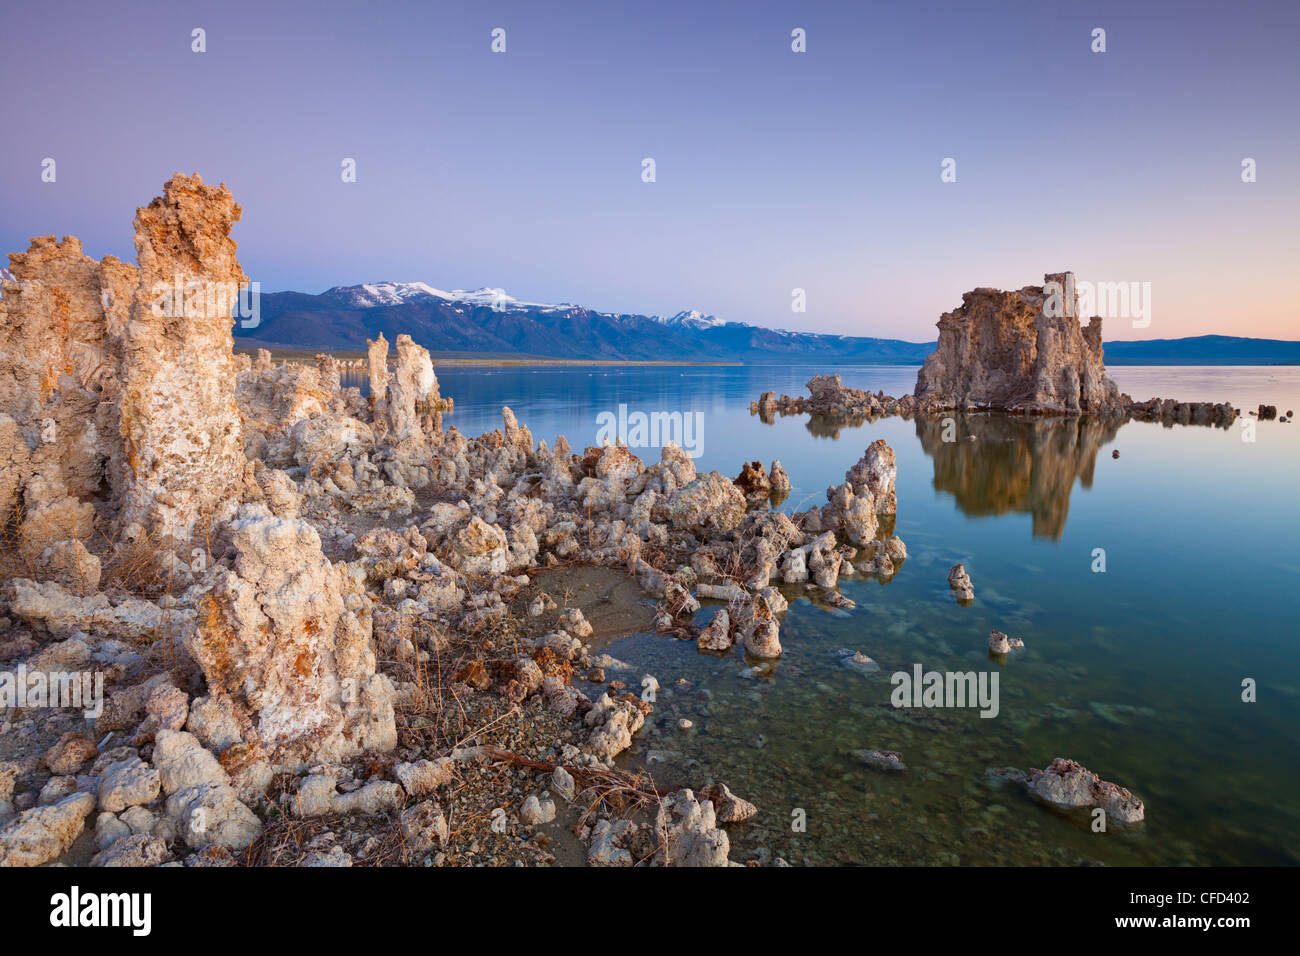 Tufa spires and tower formations of calcium carbonate, Inyo National Forest Scenic Area, California, USA - Stock Image